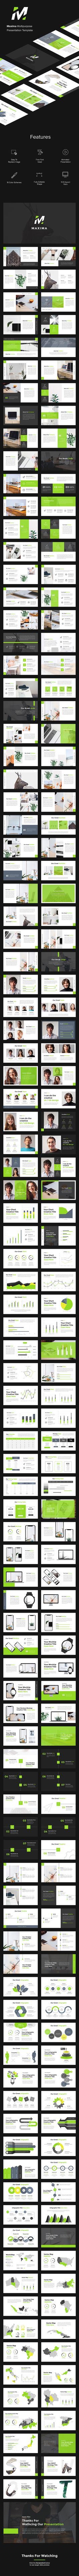 Maxima Multipurpose Google Slides - Google Slides Presentation Templates  Download link: https://graphicriver.net/item/maxima-multipurpose-google-slides/22113953?ref=KlitVogli